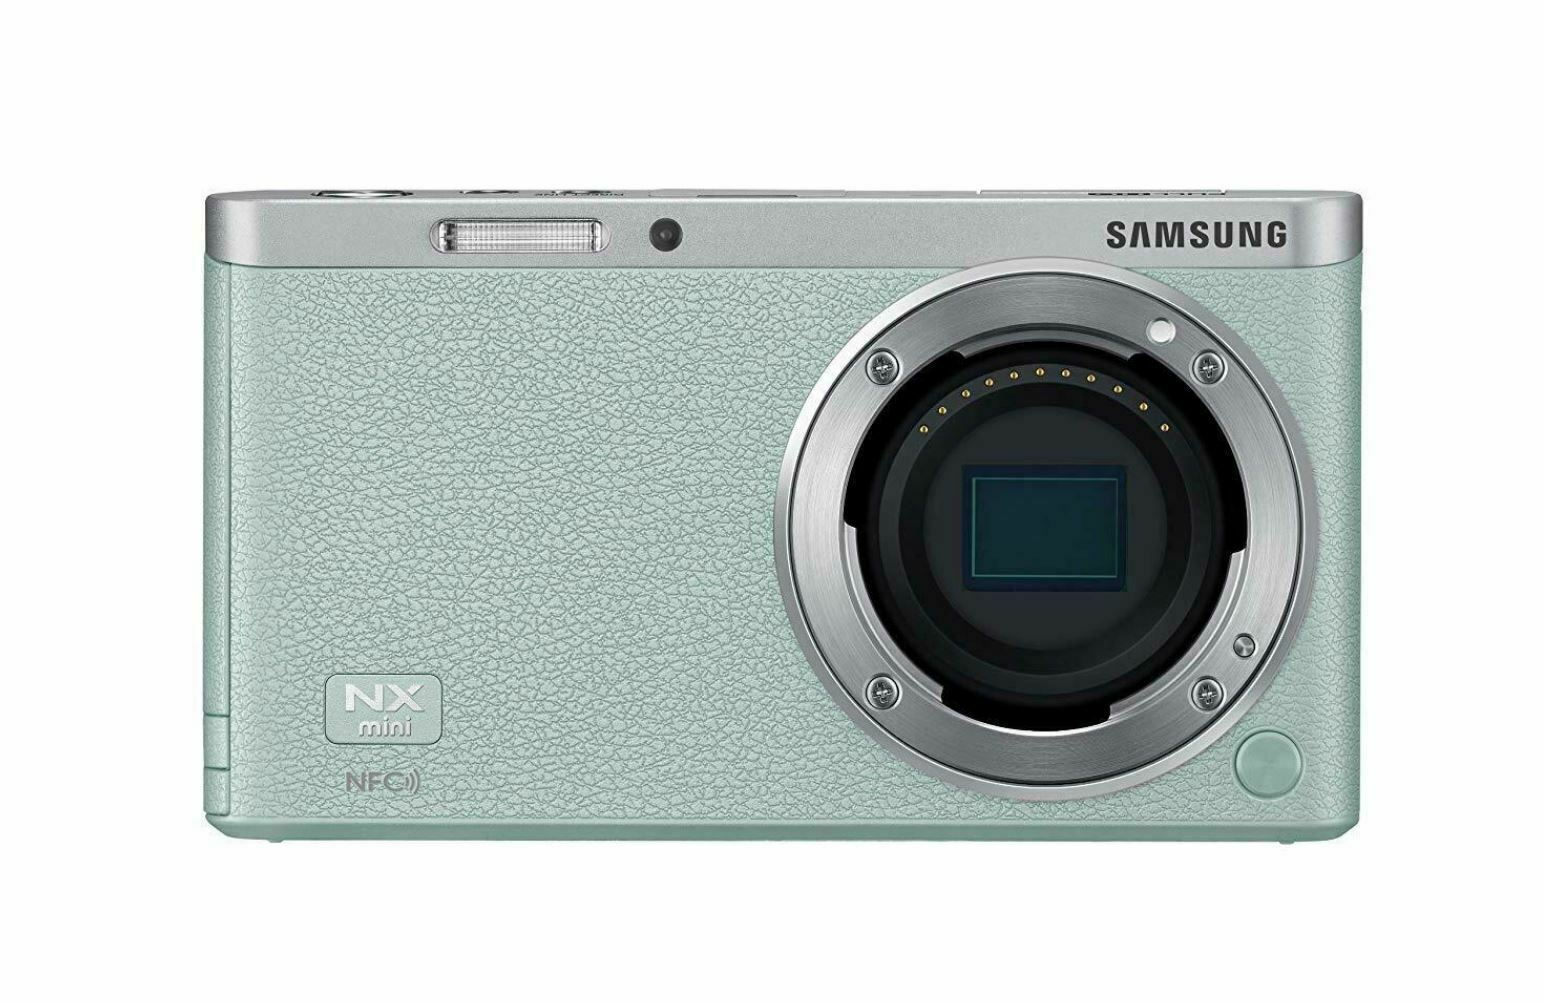 Samsung SMART CAMERA NX Mini Body only Mint /20.5MP W-iFi NFC NO BATTERYPin